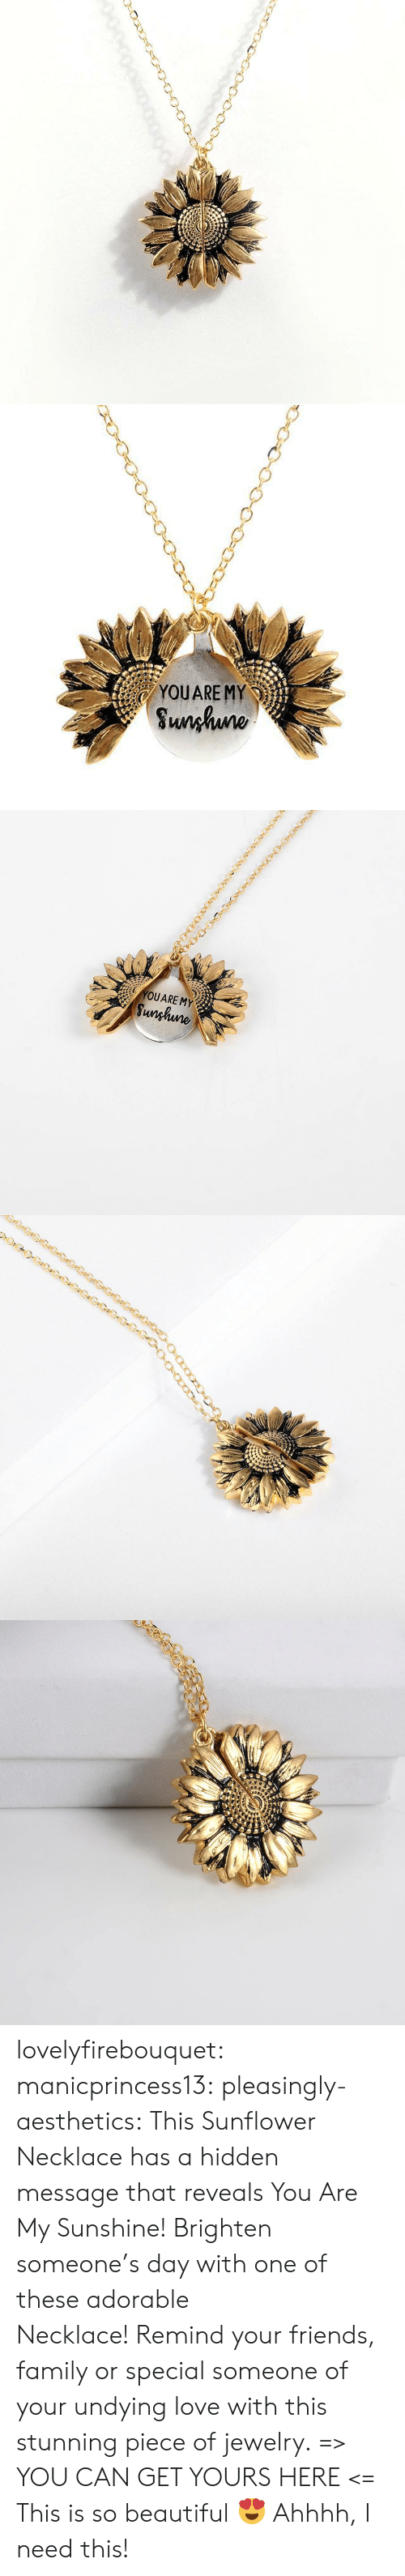 Ahhhh: YOUARE MY  Sunhuno   YOUARE MY  Sunghune lovelyfirebouquet:  manicprincess13: pleasingly-aesthetics:  This Sunflower Necklace has a hidden message that reveals You Are My Sunshine! Brighten someone's day with one of these adorable Necklace!Remind your friends, family or special someone of your undying love with this stunning piece of jewelry. => YOU CAN GET YOURS HERE <=   This is so beautiful 😍   Ahhhh, I need this!